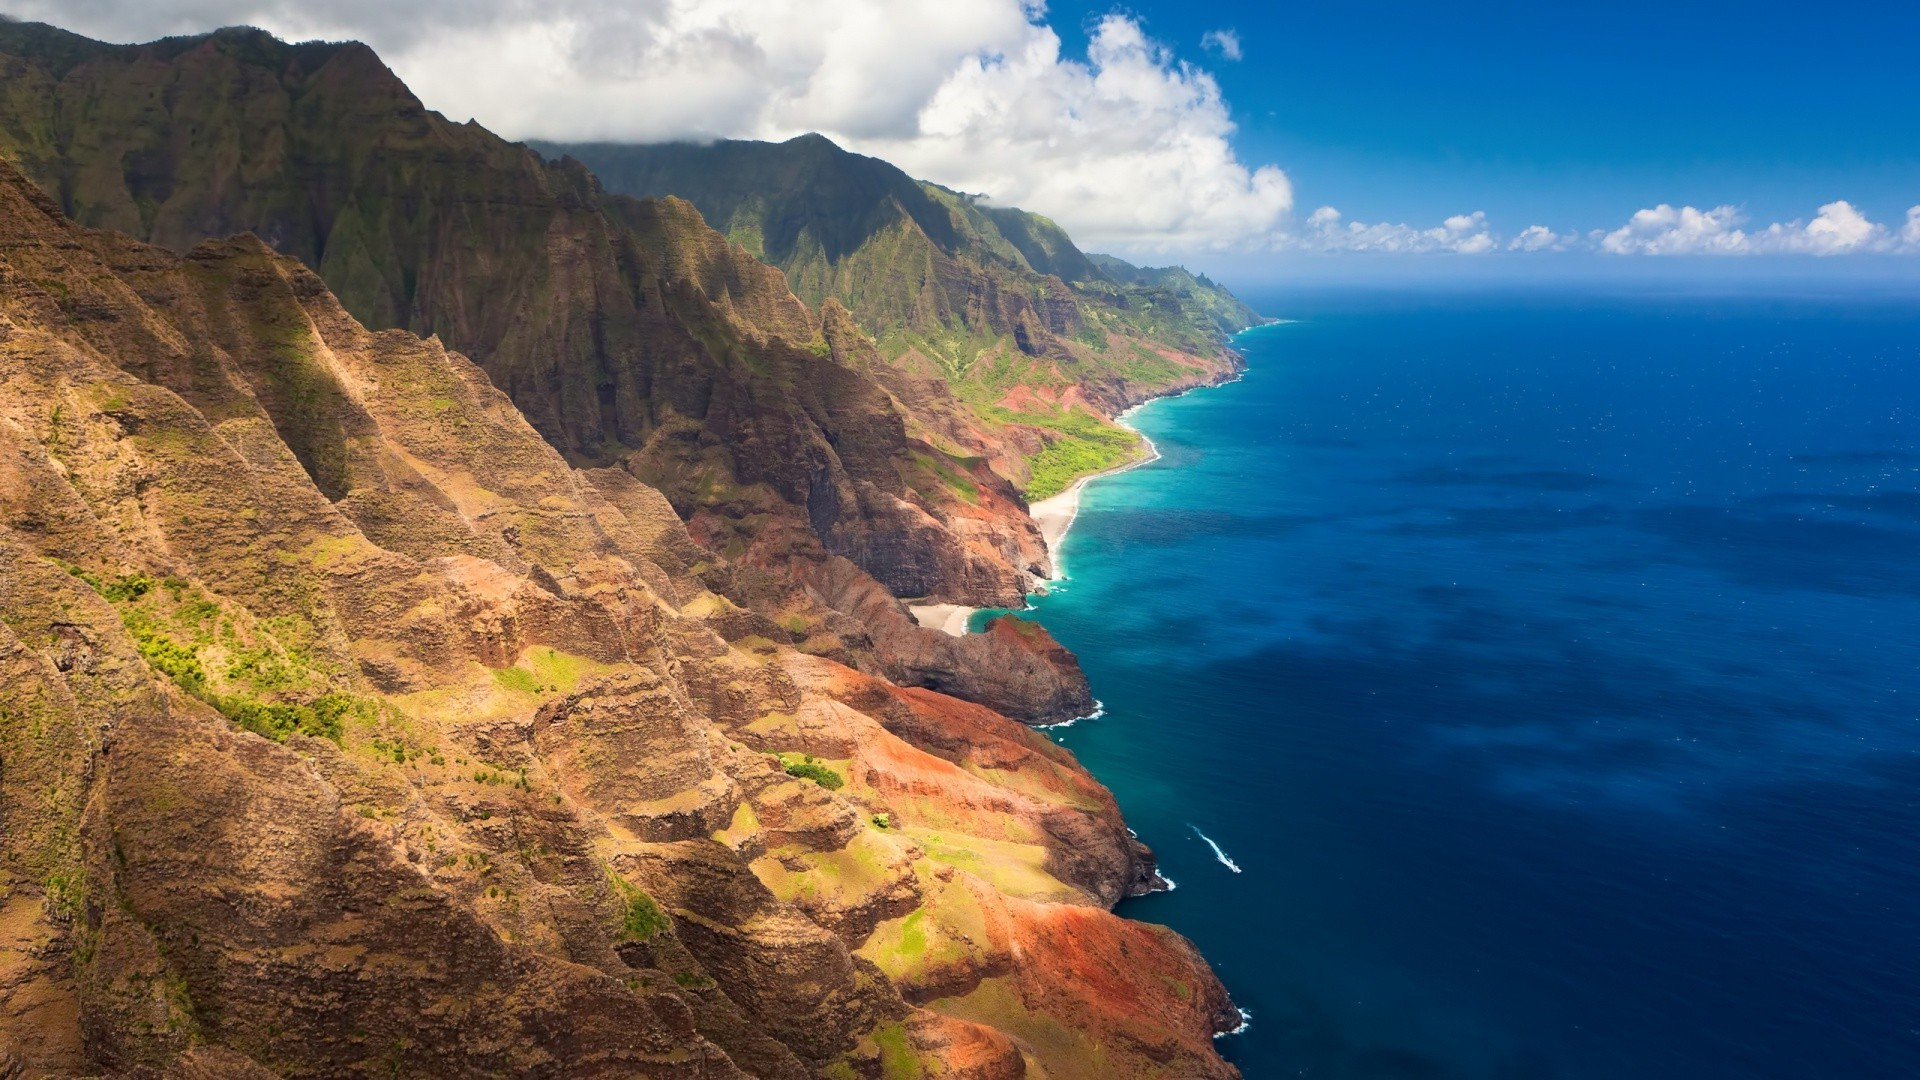 1920x1080 landscape, Na Pali Coast, Coast, Sea, Hawaii Wallpapers HD .